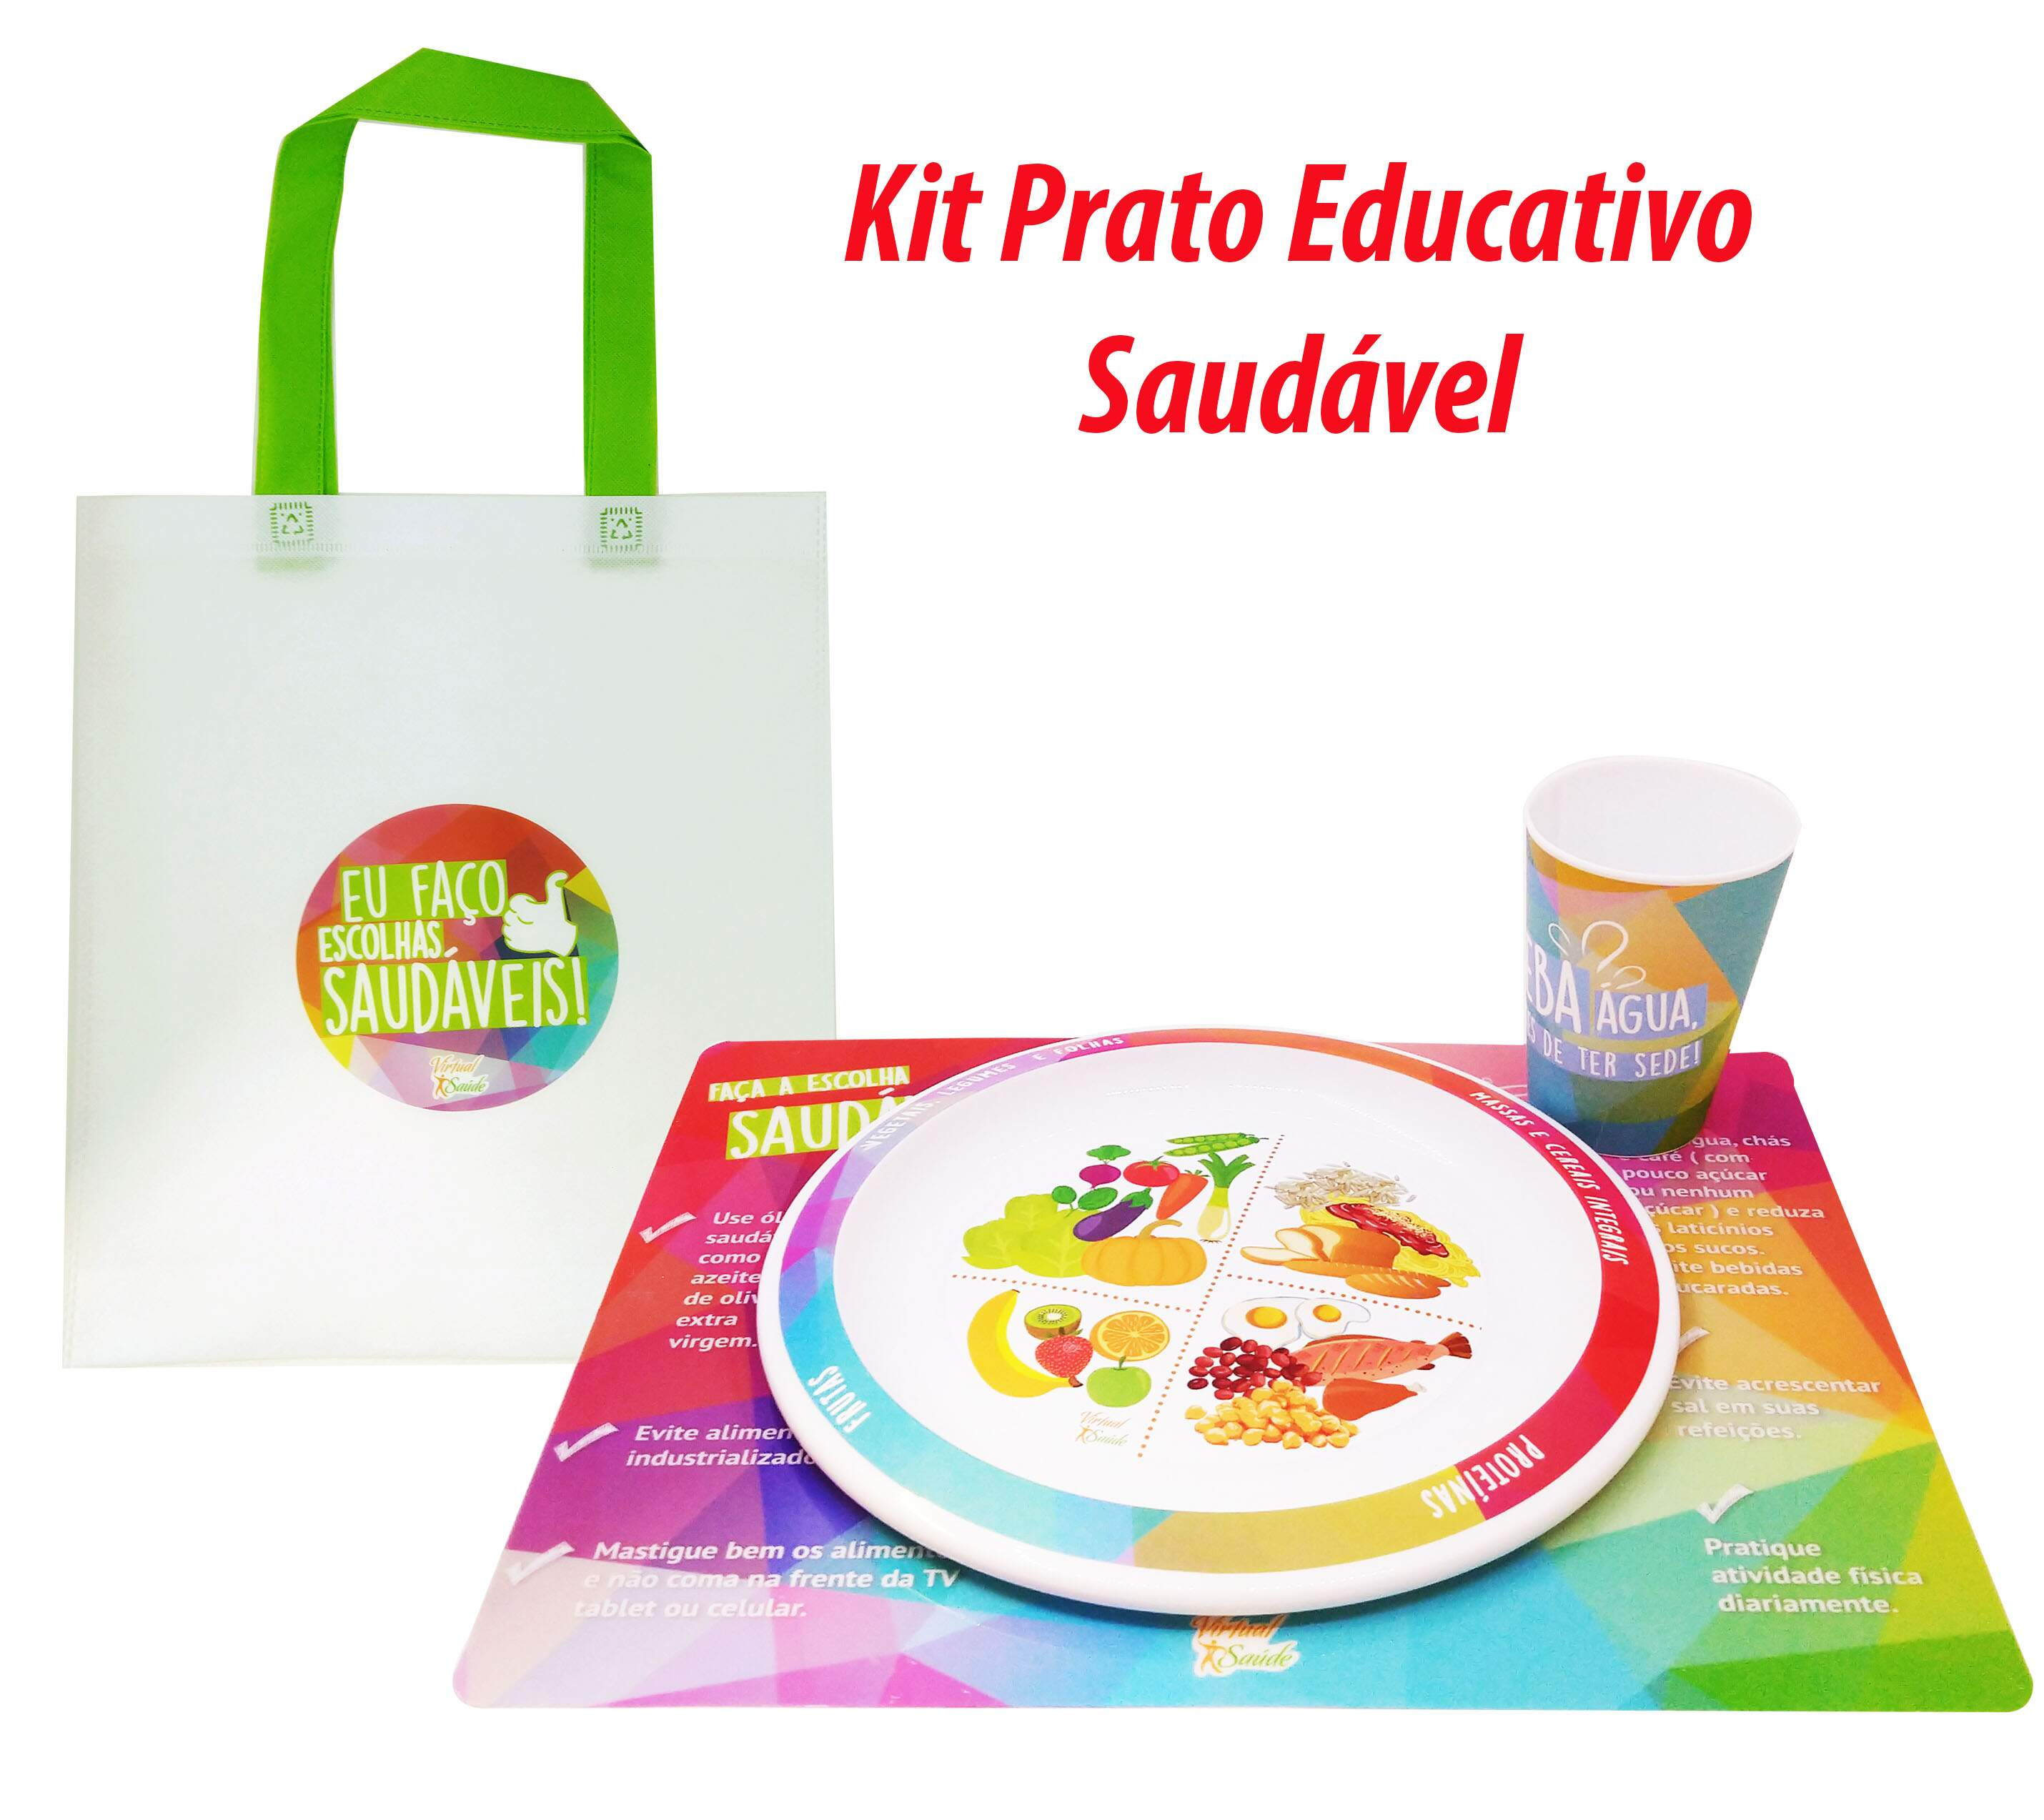 Kit Prato Educativo Saudável